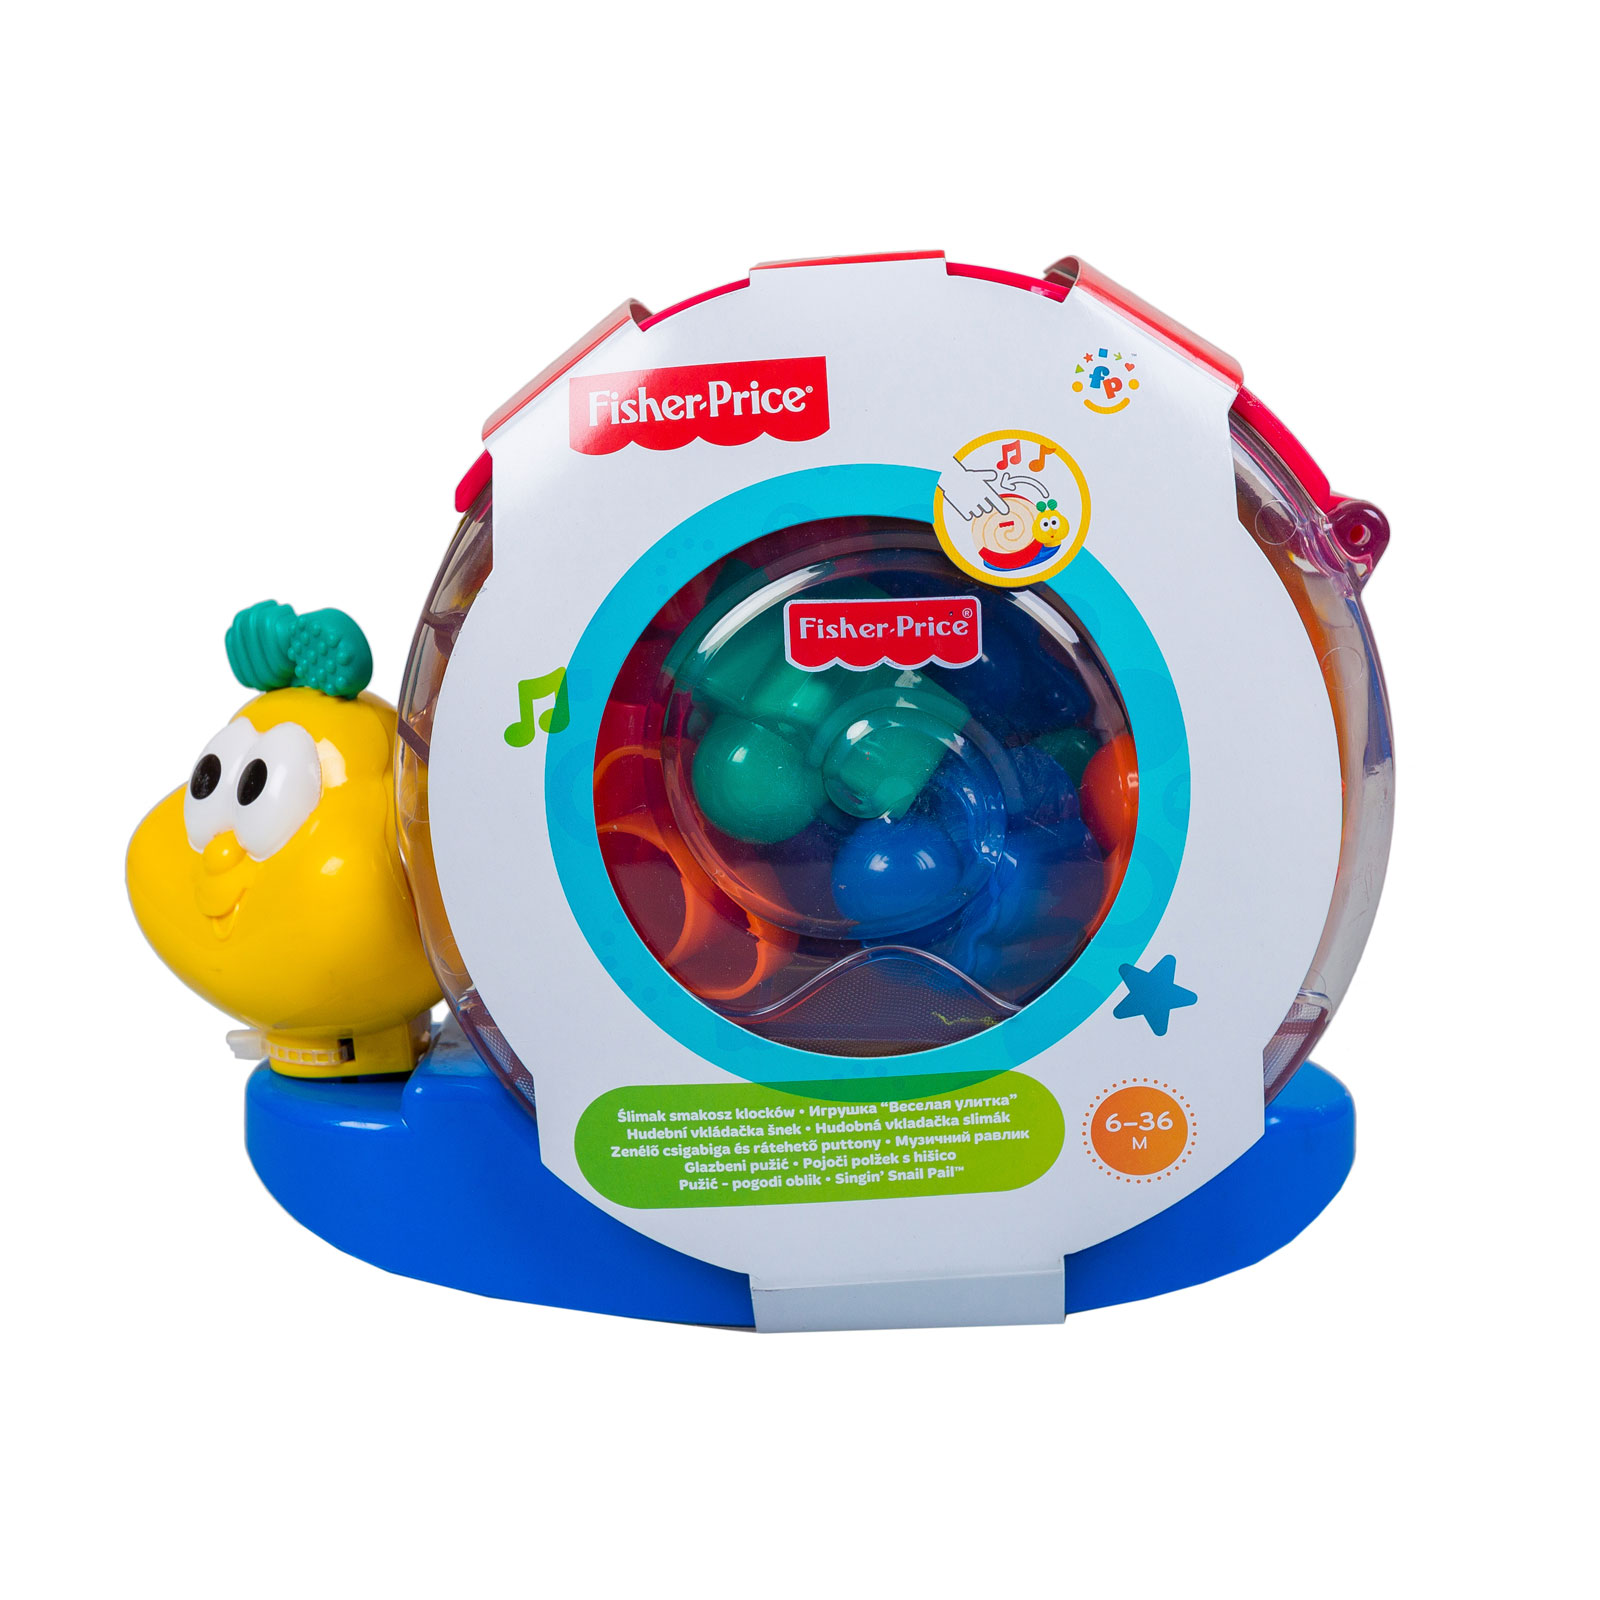 ����������� ������� Fisher Price ������ ������ � 6 ���